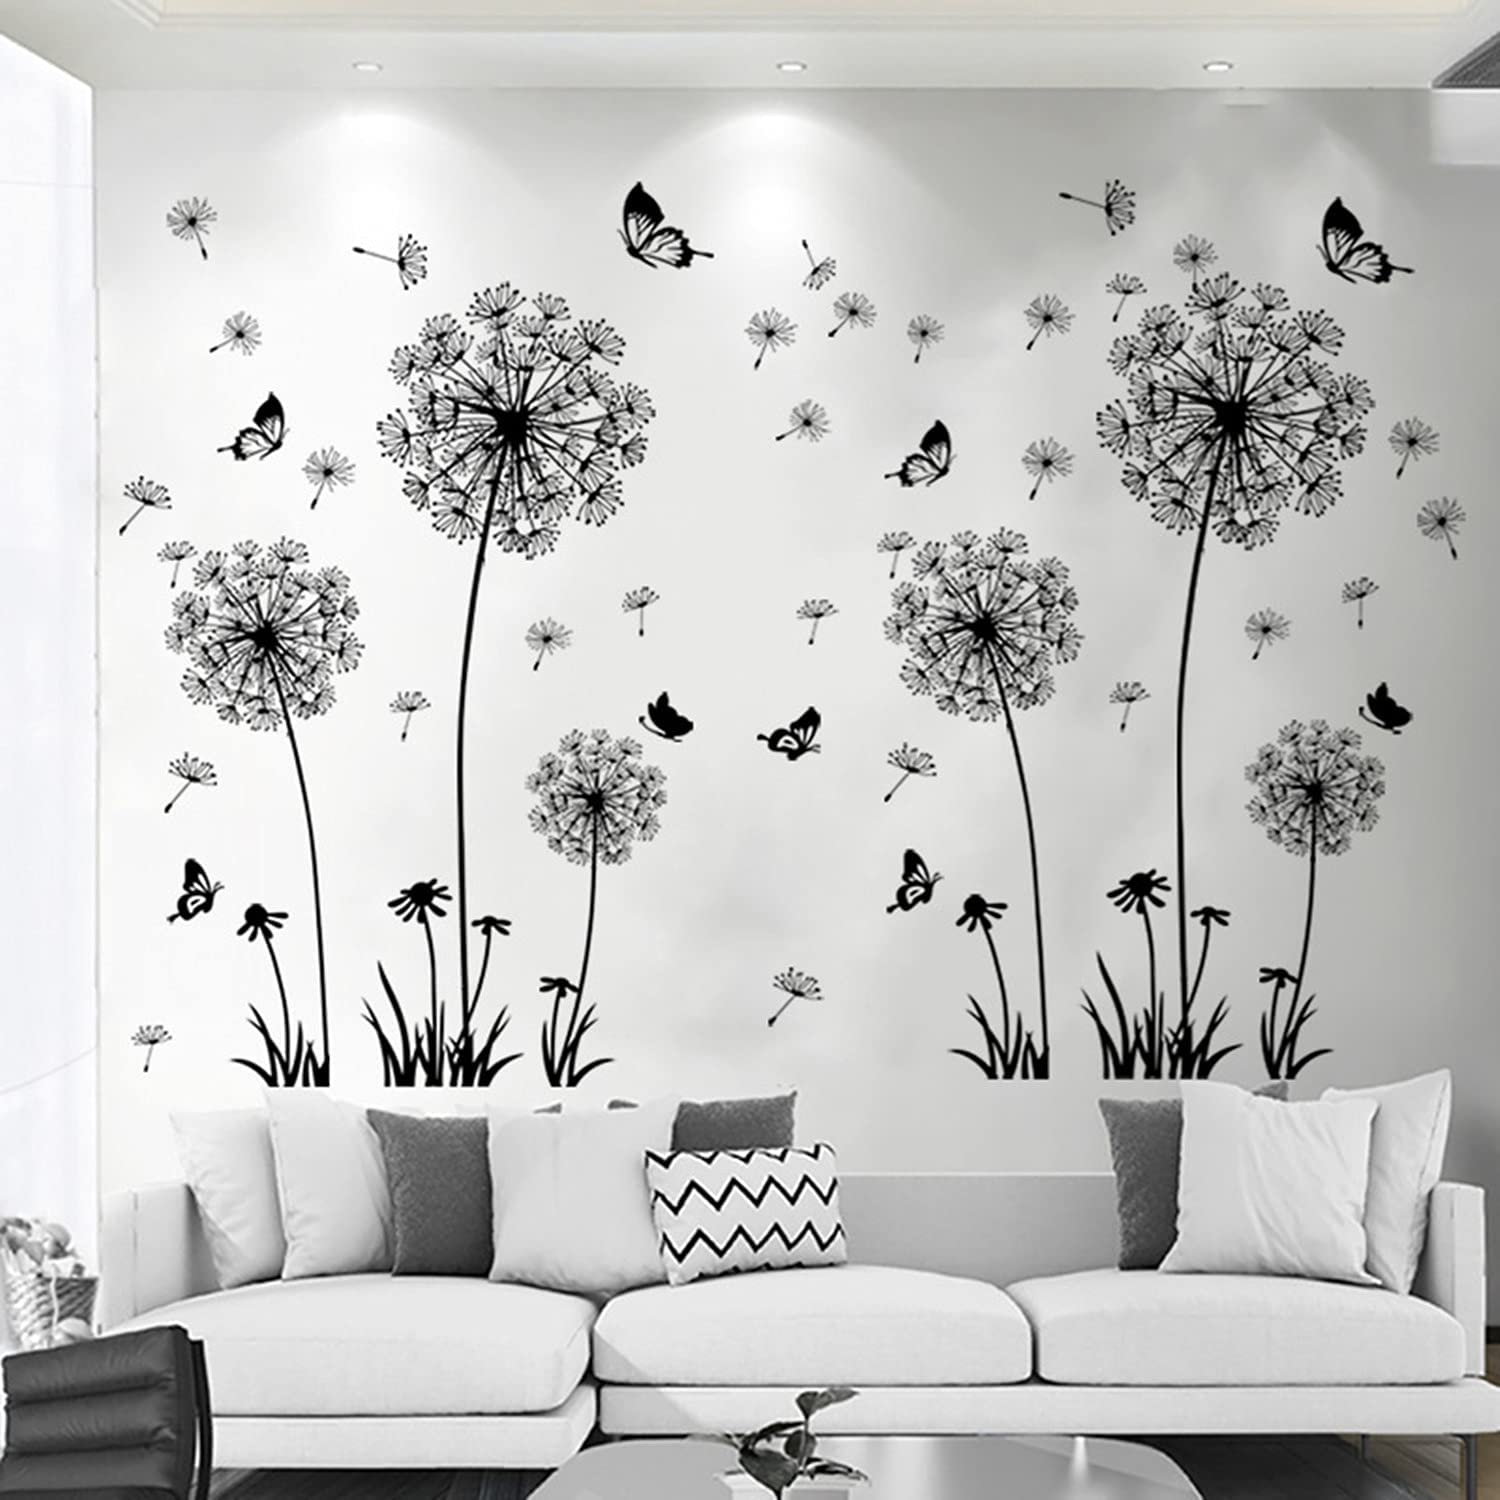 Black Room Wall Decals Decor for Bedroom Butterfly Flower Wall Stickers for Living Room Black Dandelion Nursery Wall Decor Stickers & Murals Butterfly 3D DIY Wall Art as Decorations Peel and Stick